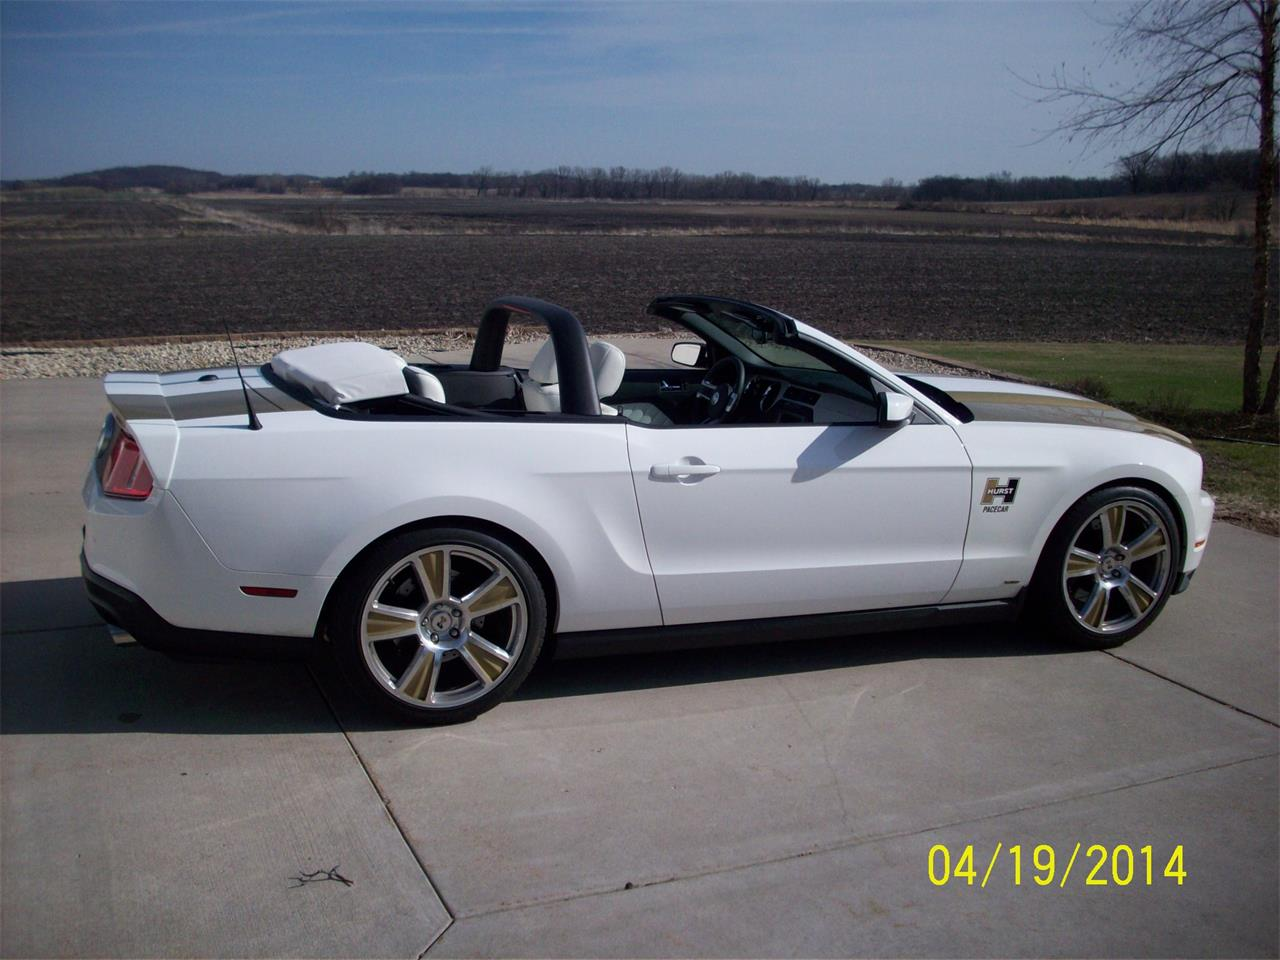 Large Picture of '10 Mustang - $39,000.00 Offered by a Private Seller - L7Y7